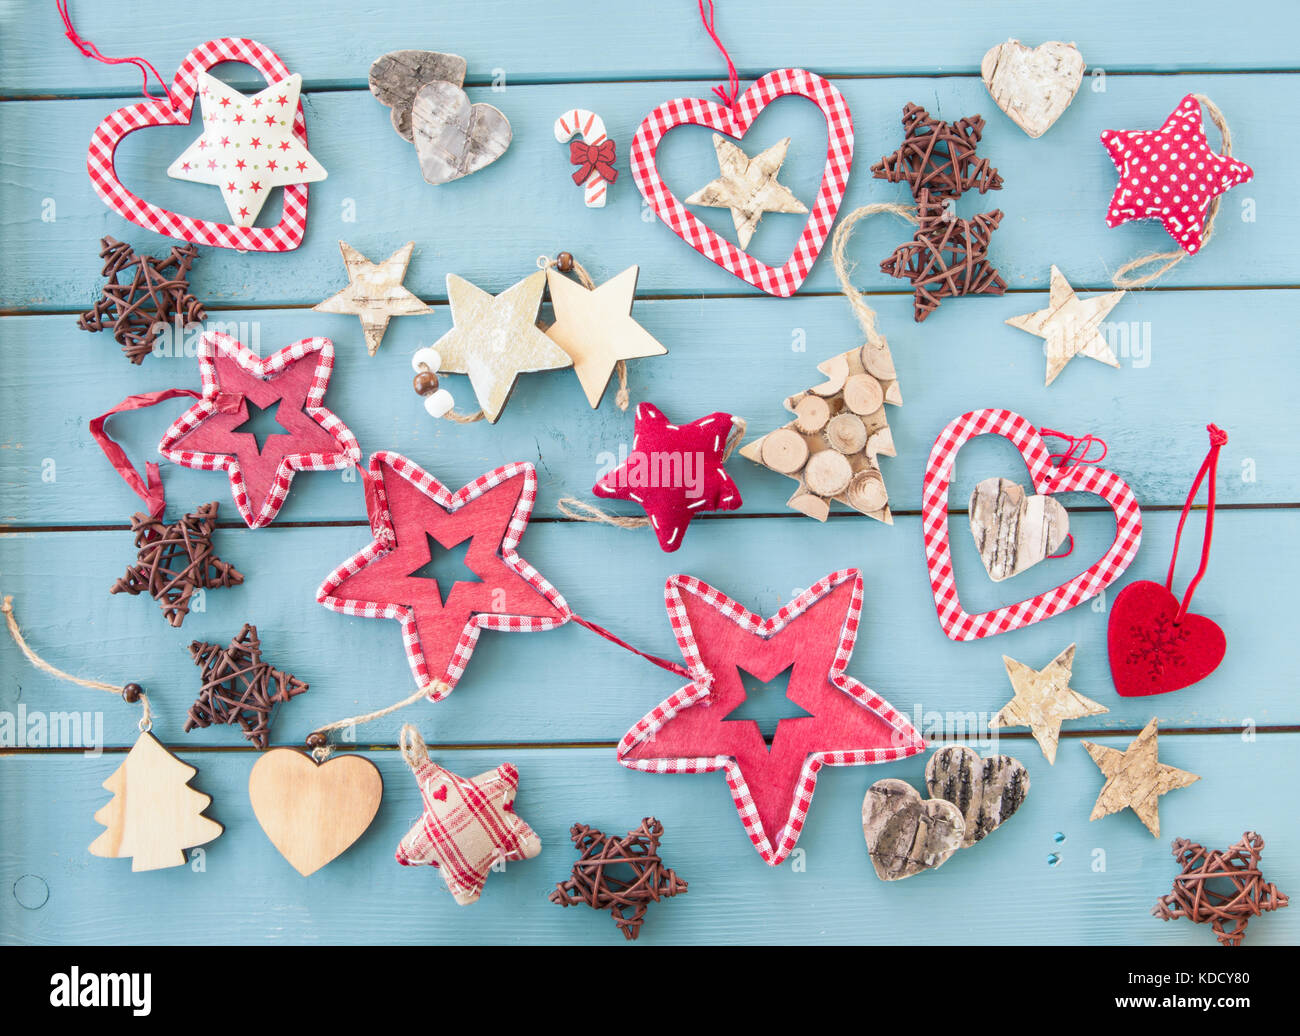 Rustic christmas decorations and ornaments on blue wooden background Stock Photo